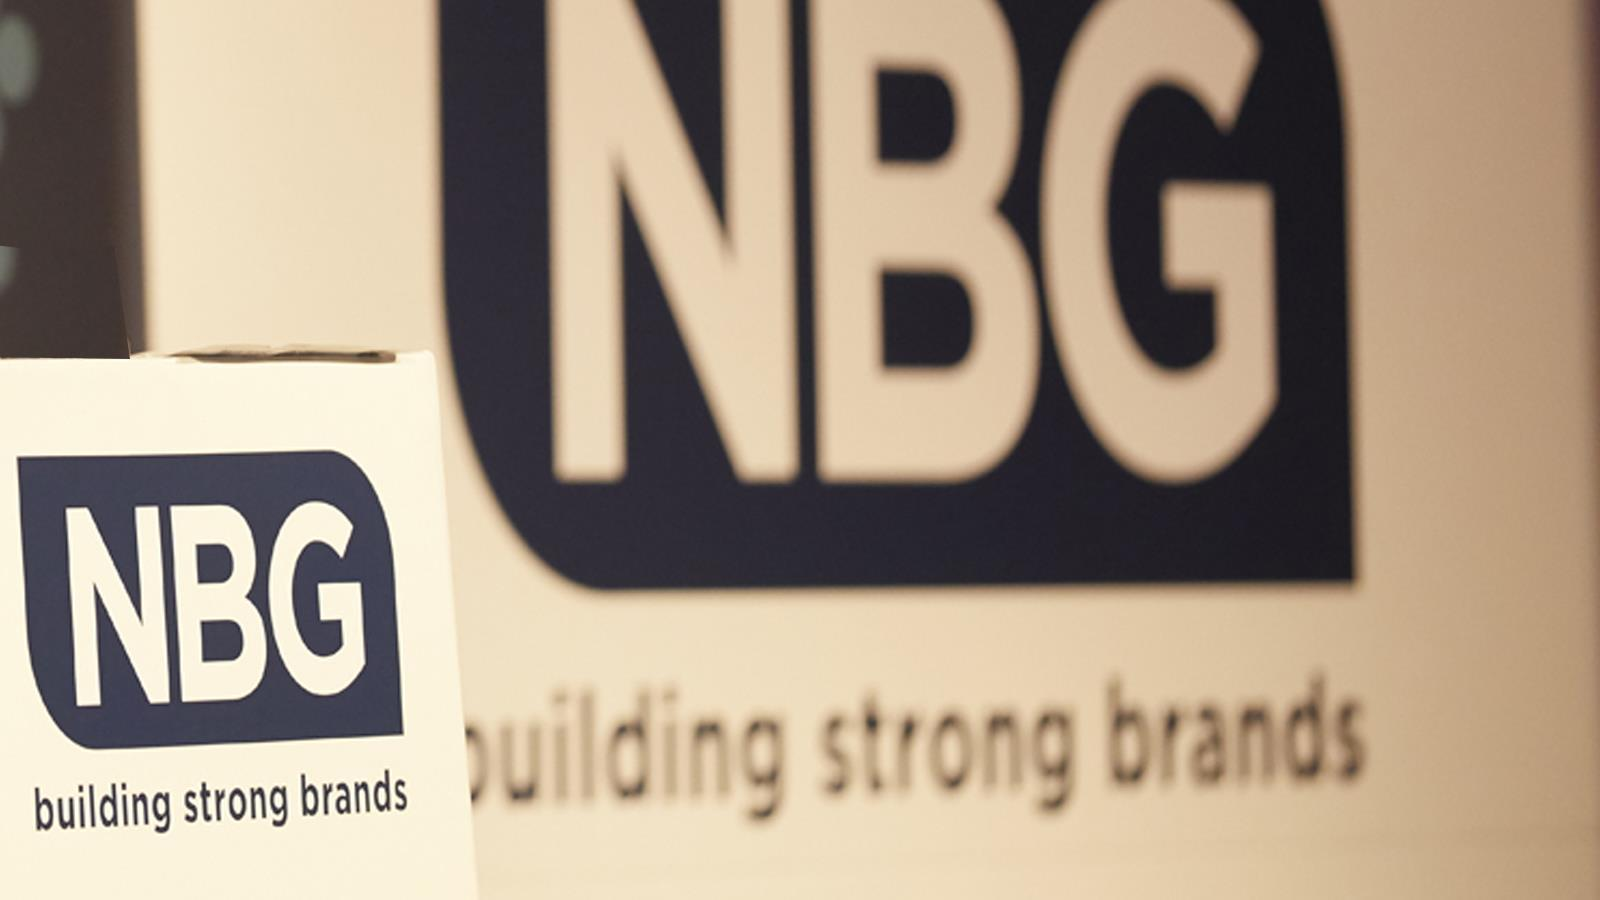 NBG announces new suppliers image